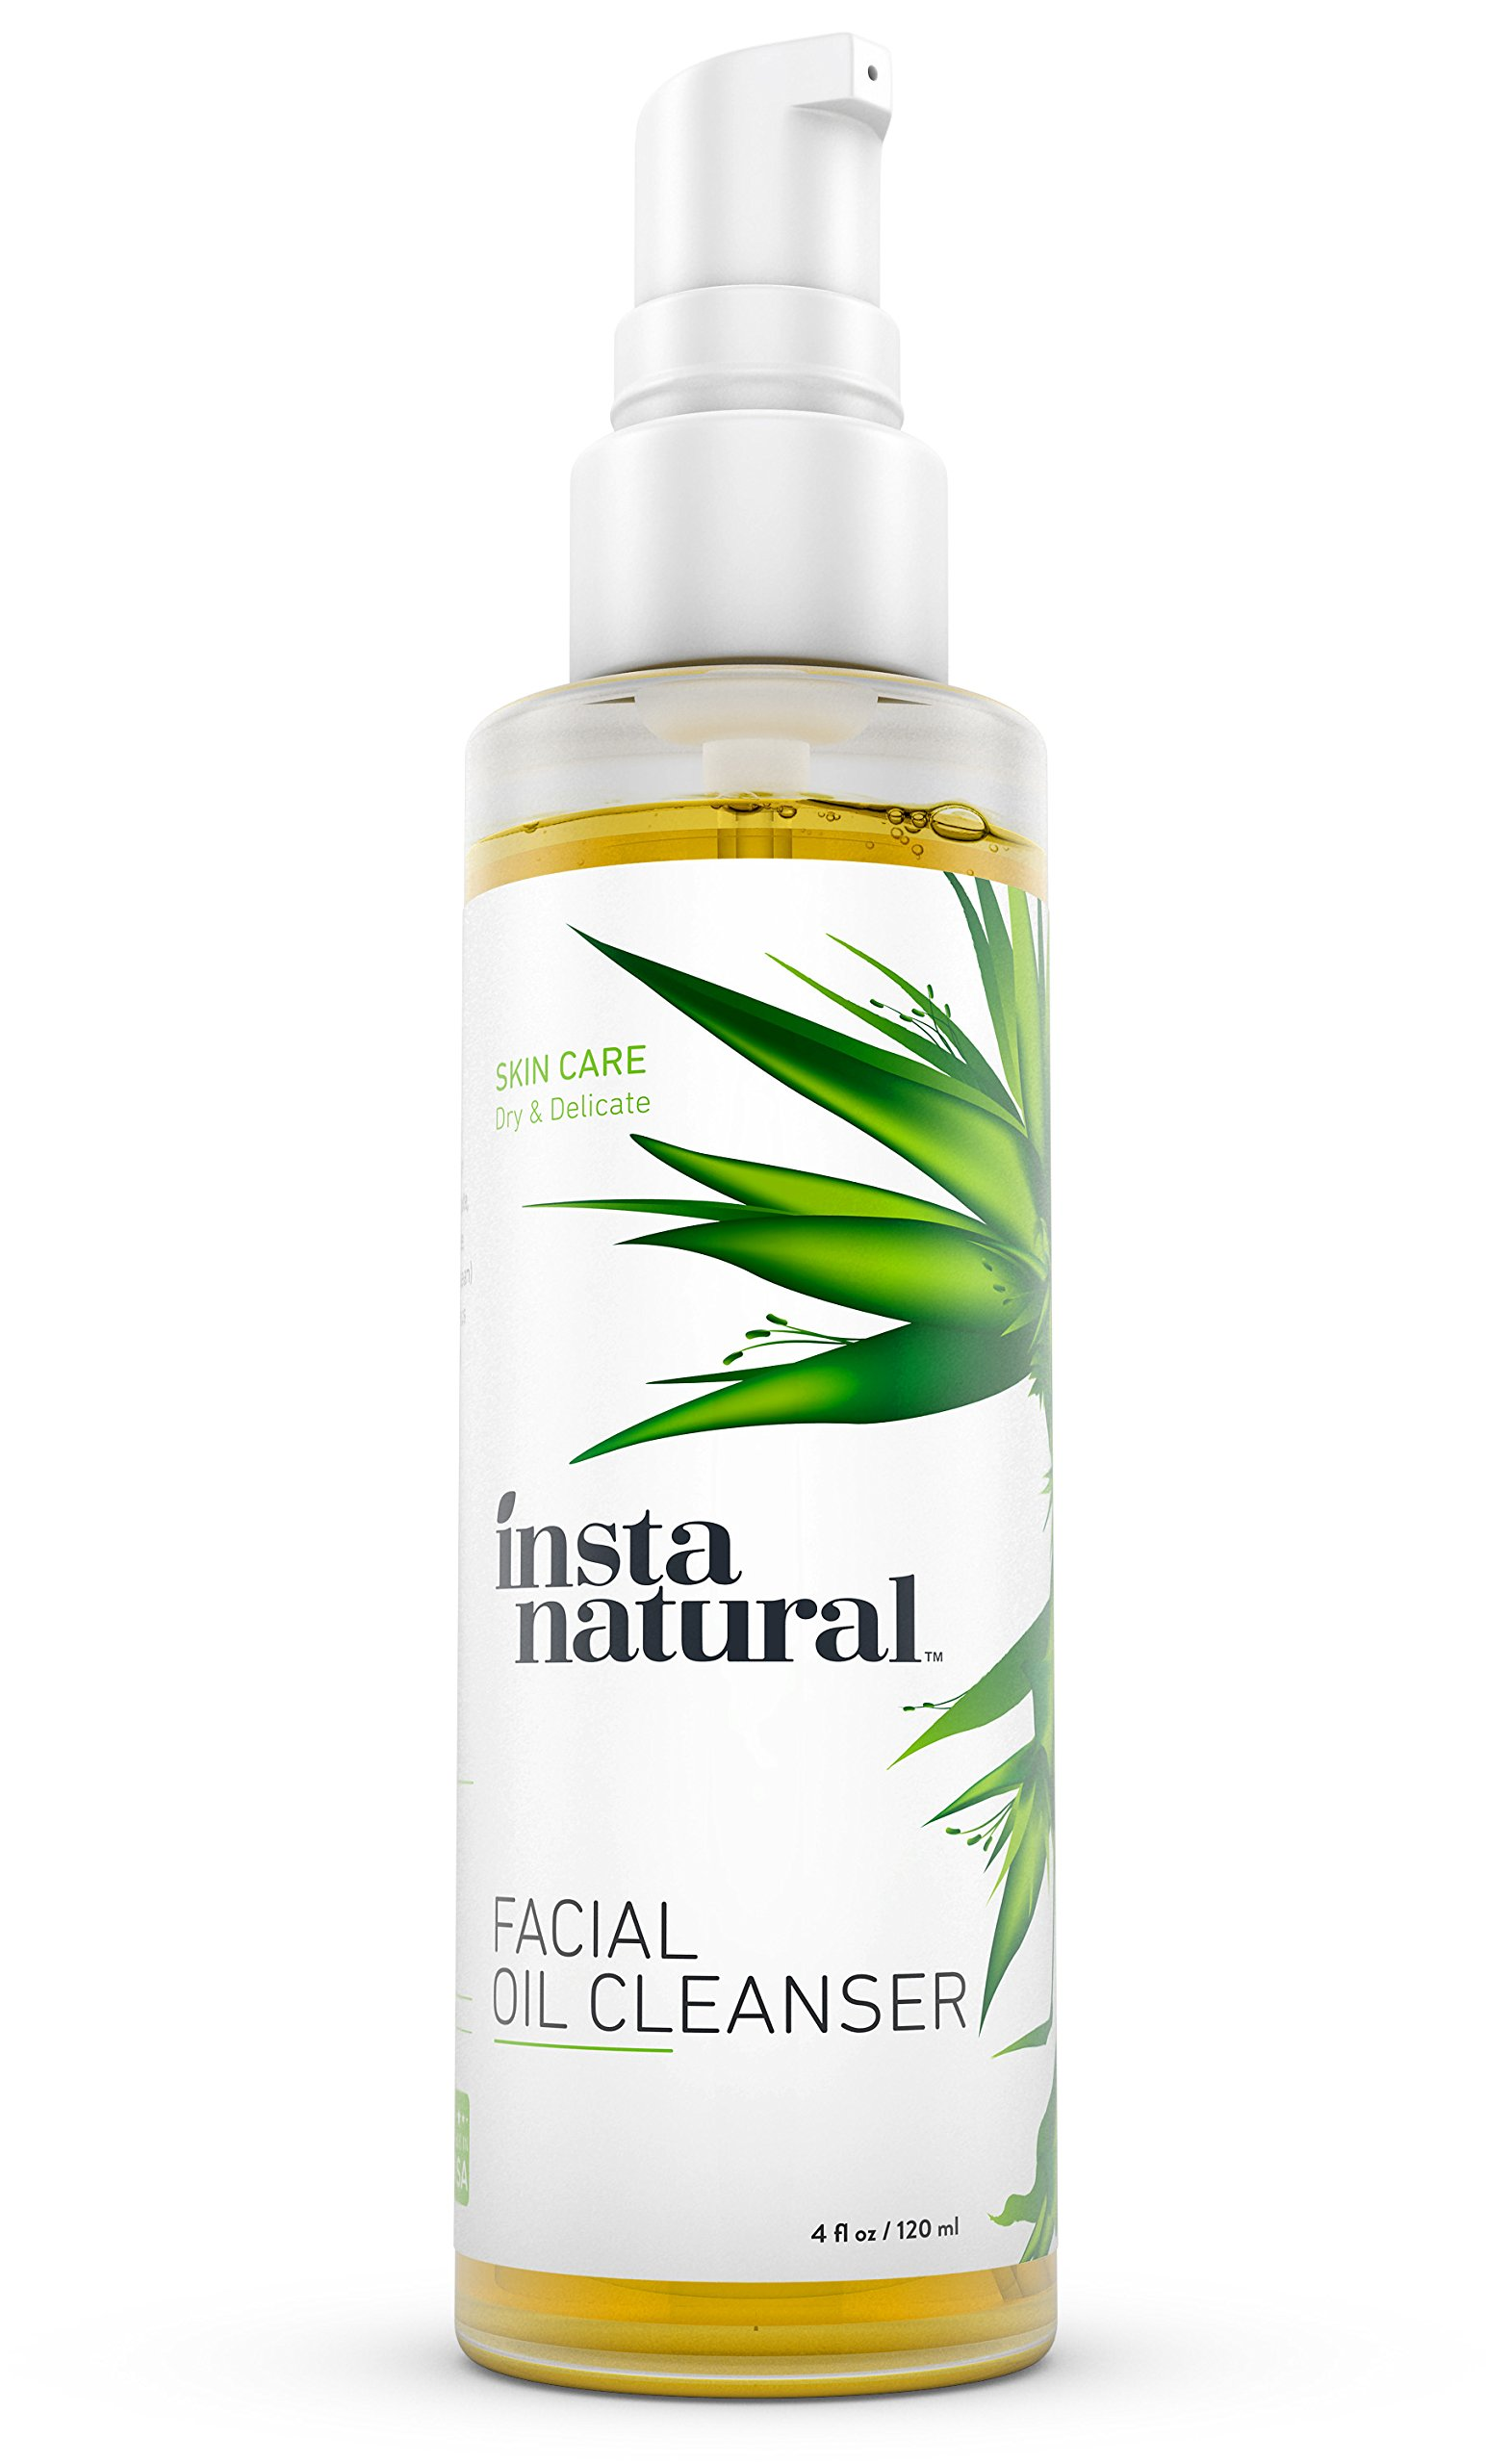 InstaNatural Deep Pore Cleansing Oil with Sunflower and Rosemary Seed Oil for Dry or Sensitive Skin, 4 oz